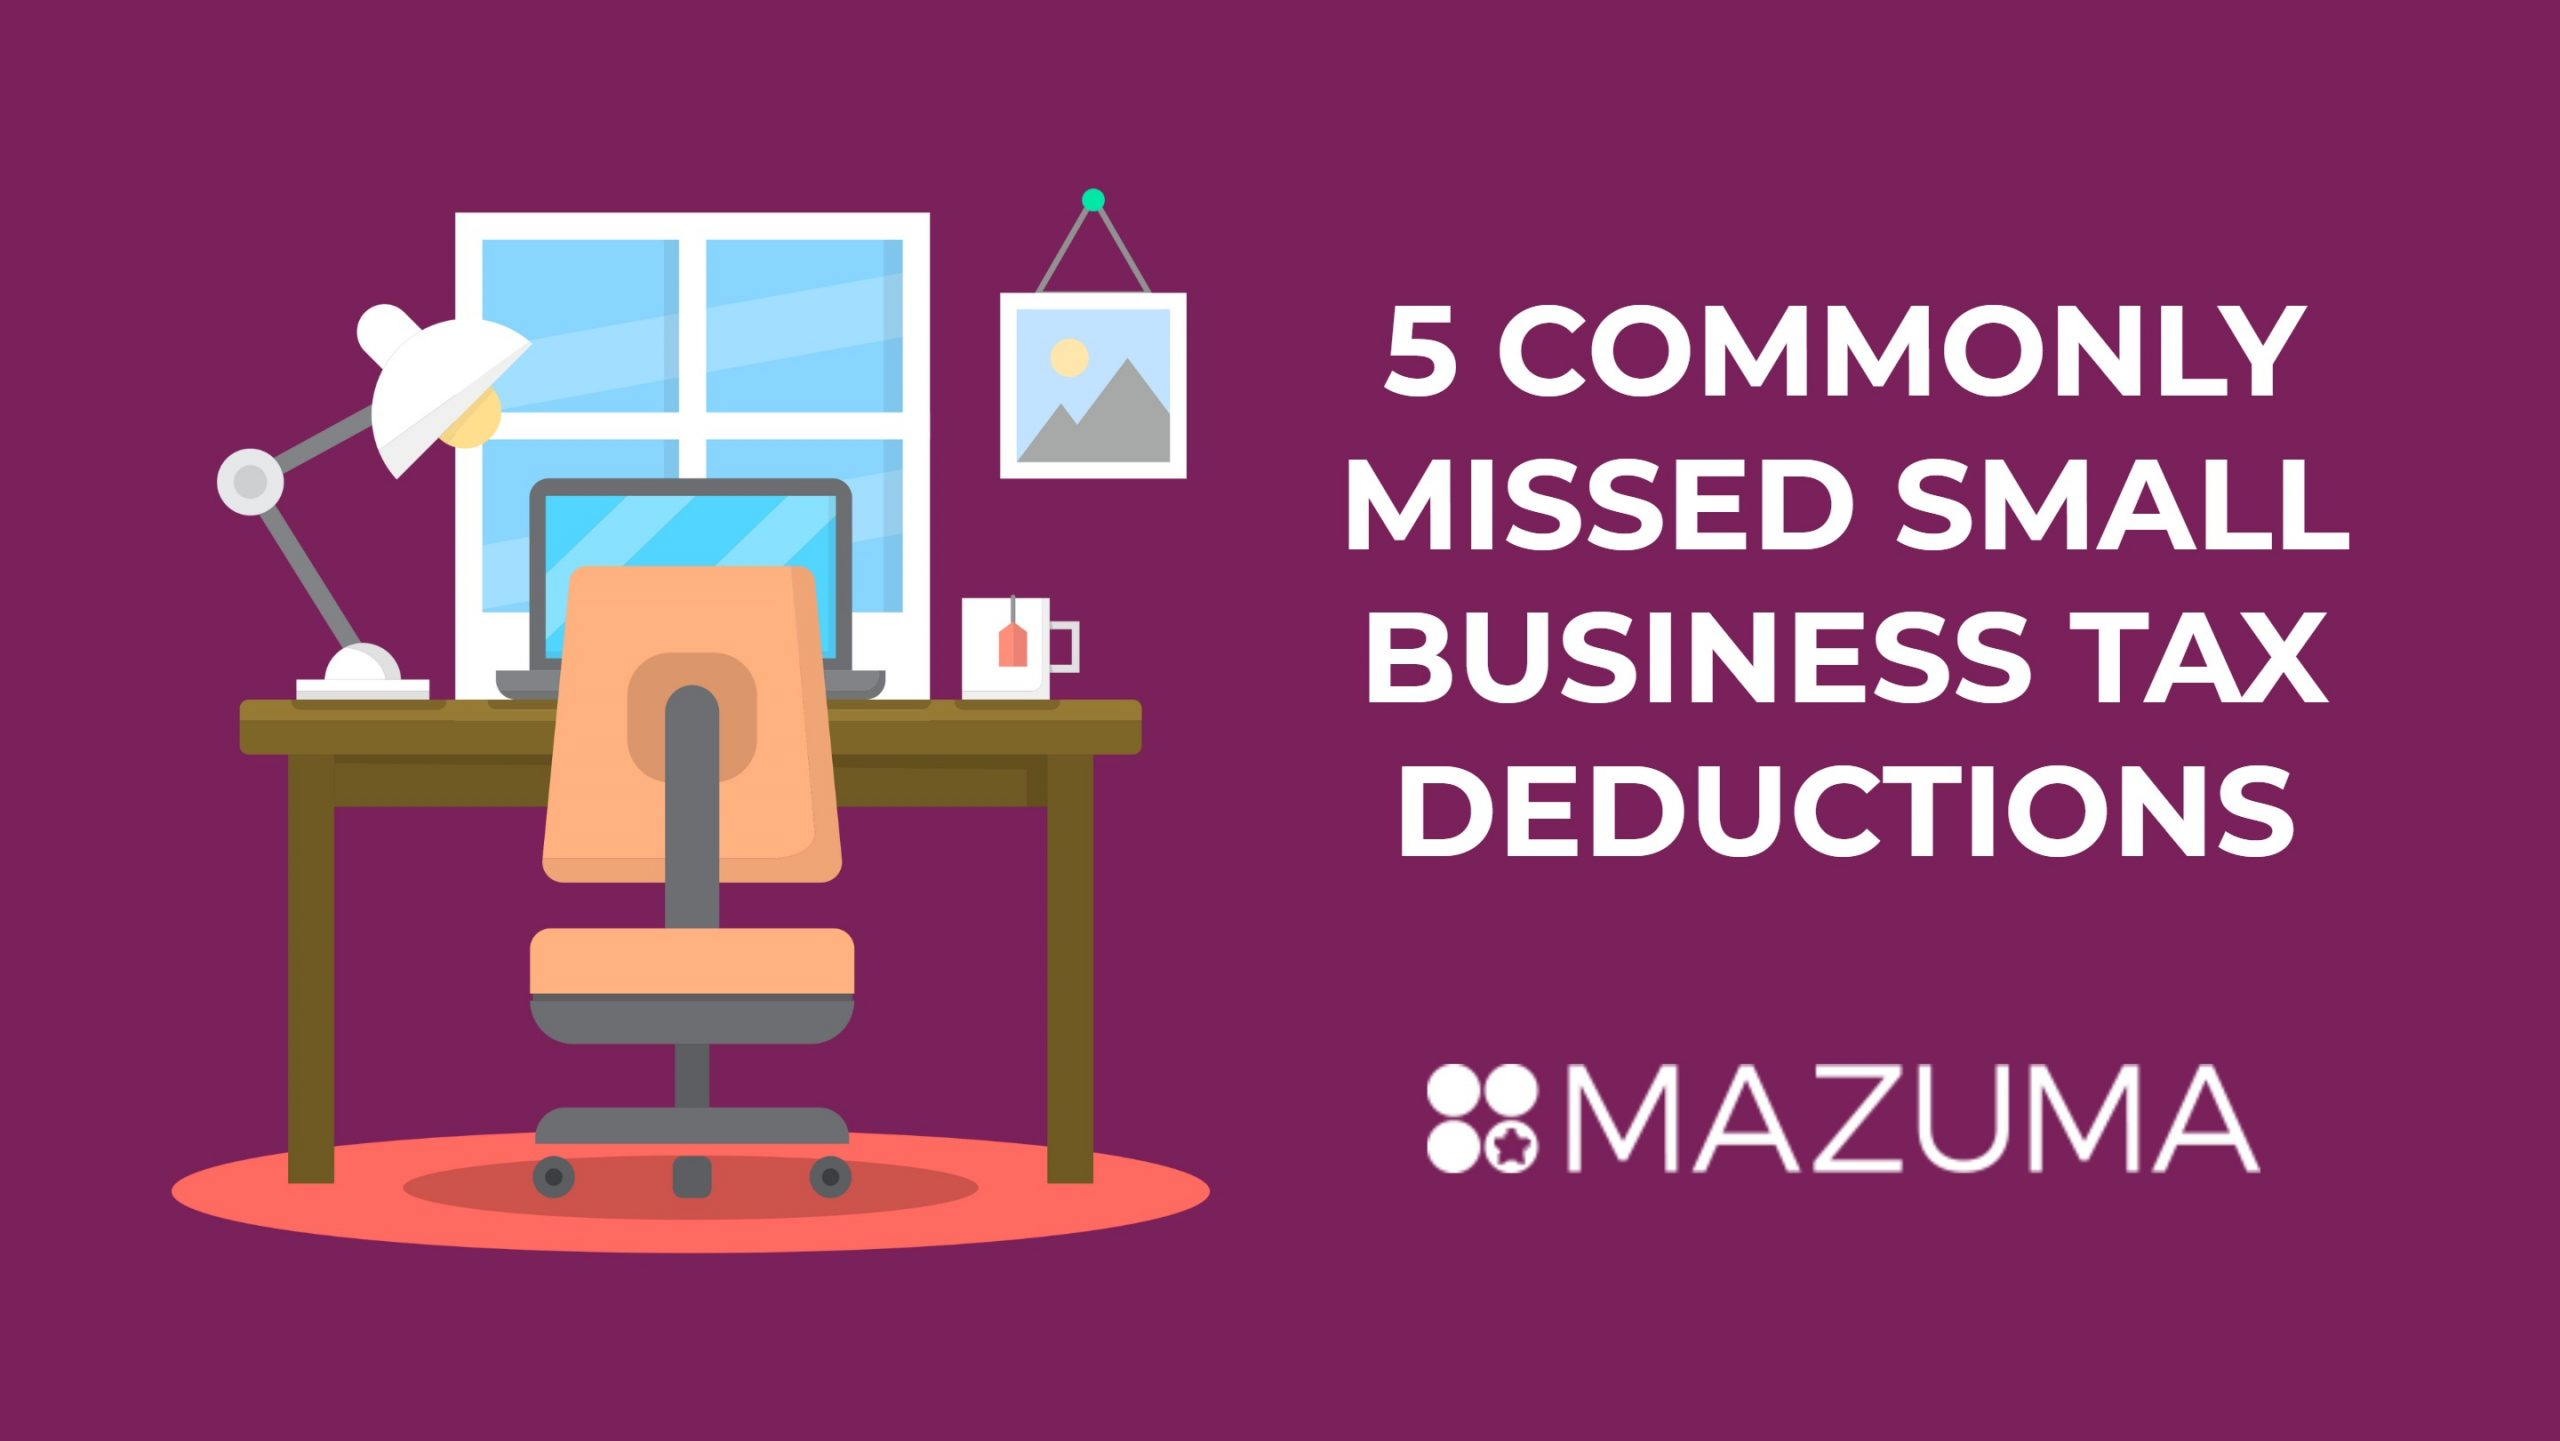 5 Commonly Missed Small Business Tax Deductions